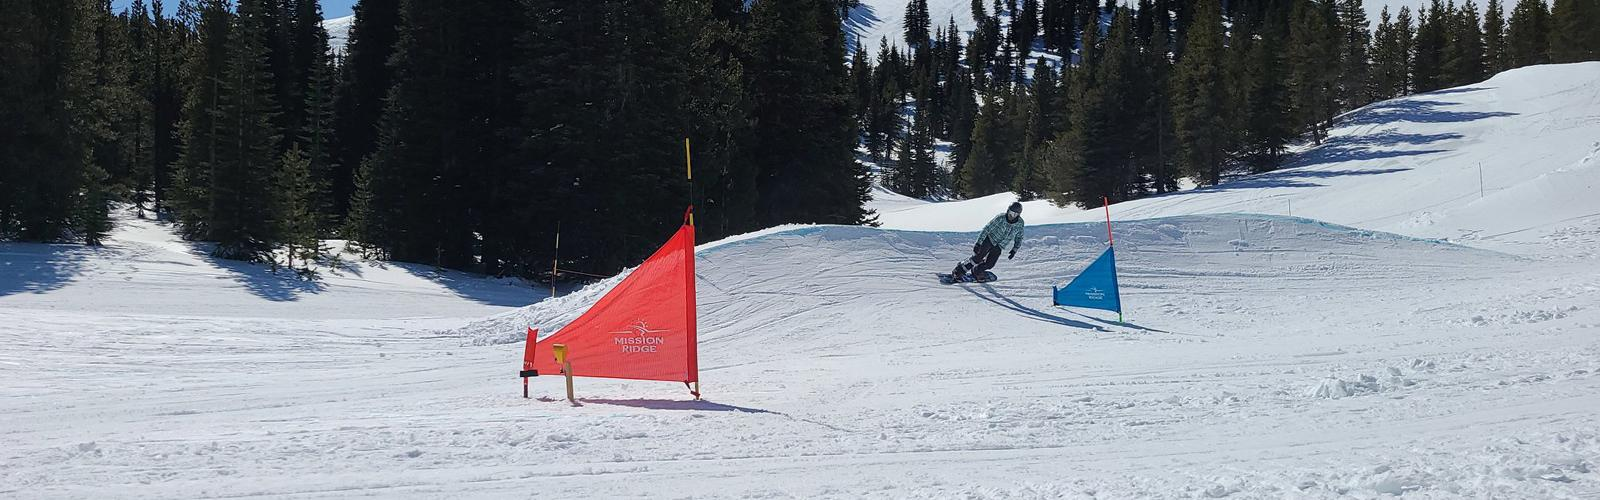 Snowboarder on banked slalom course